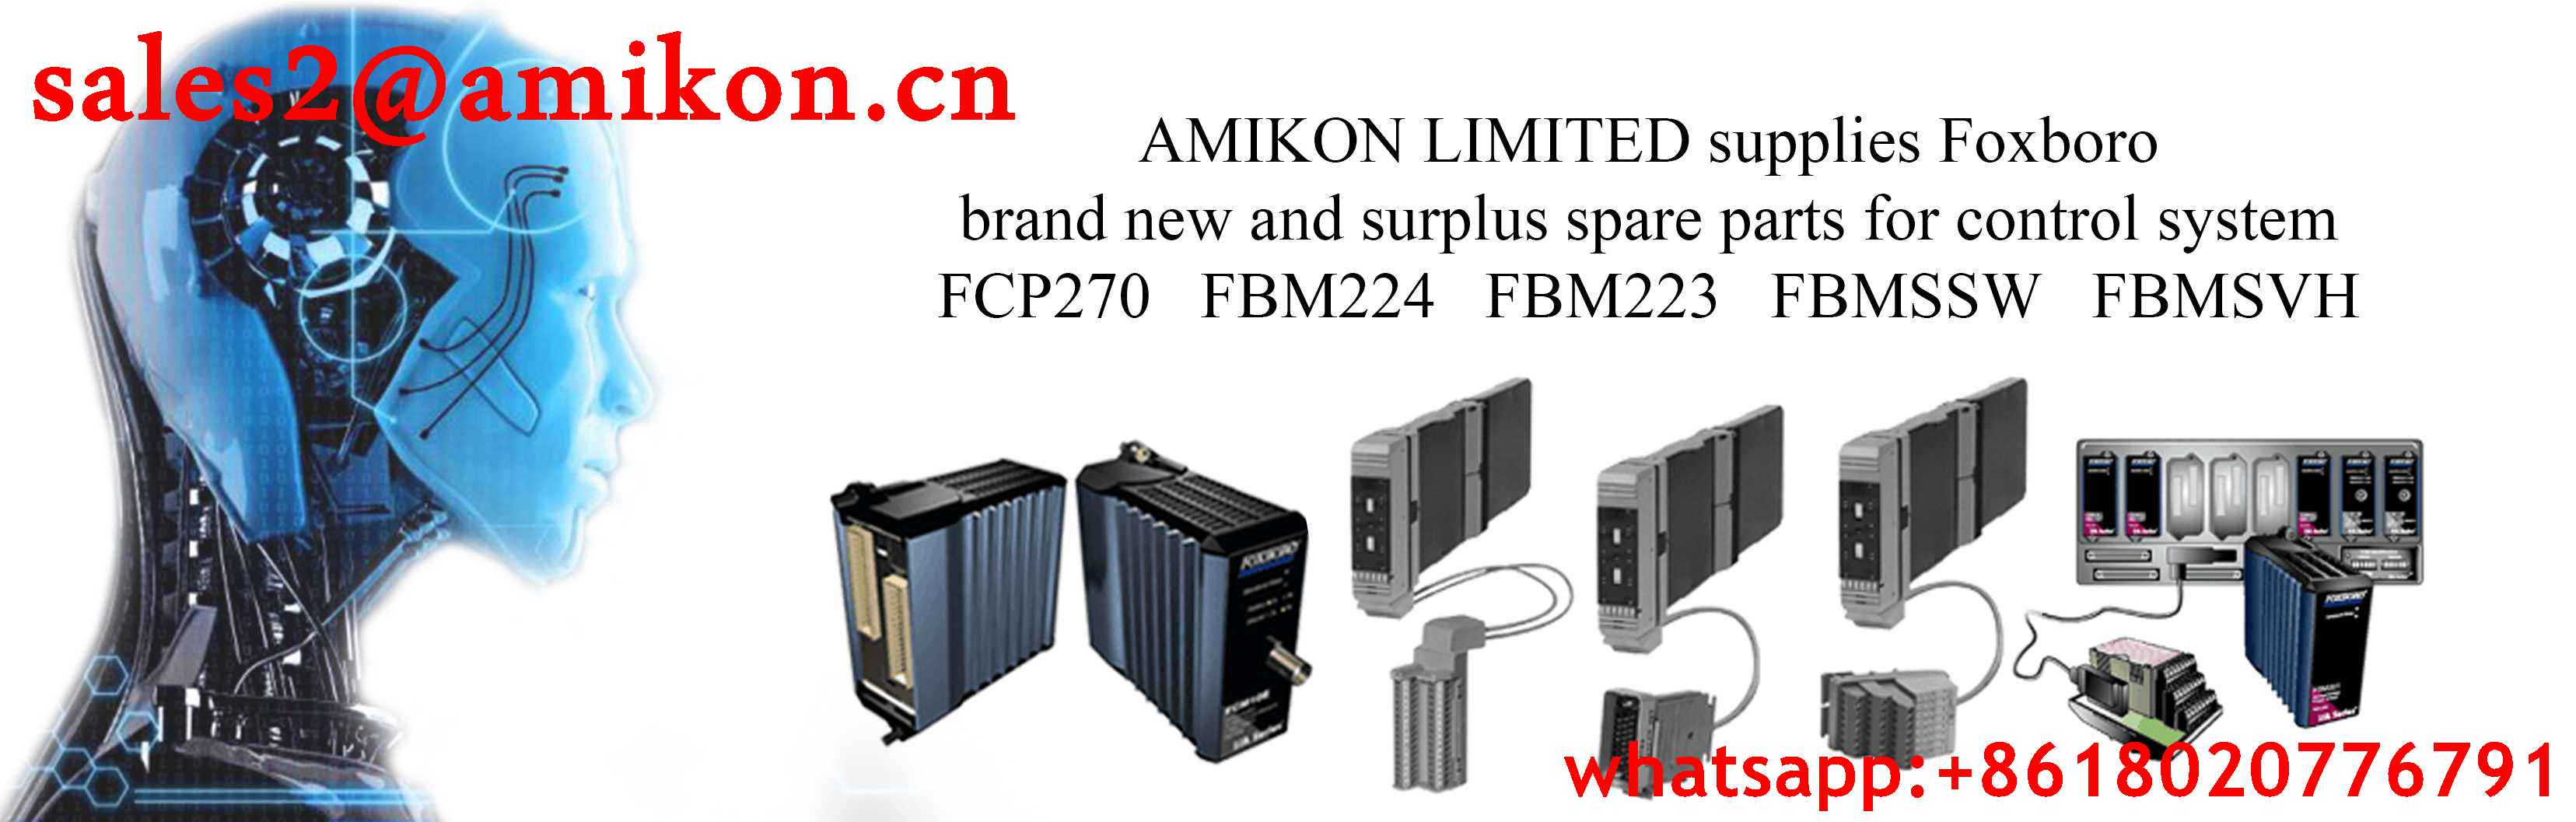 IC697CPM915 GE General Electric sales2@amikon.cn PLC DCS Industry Control System Module